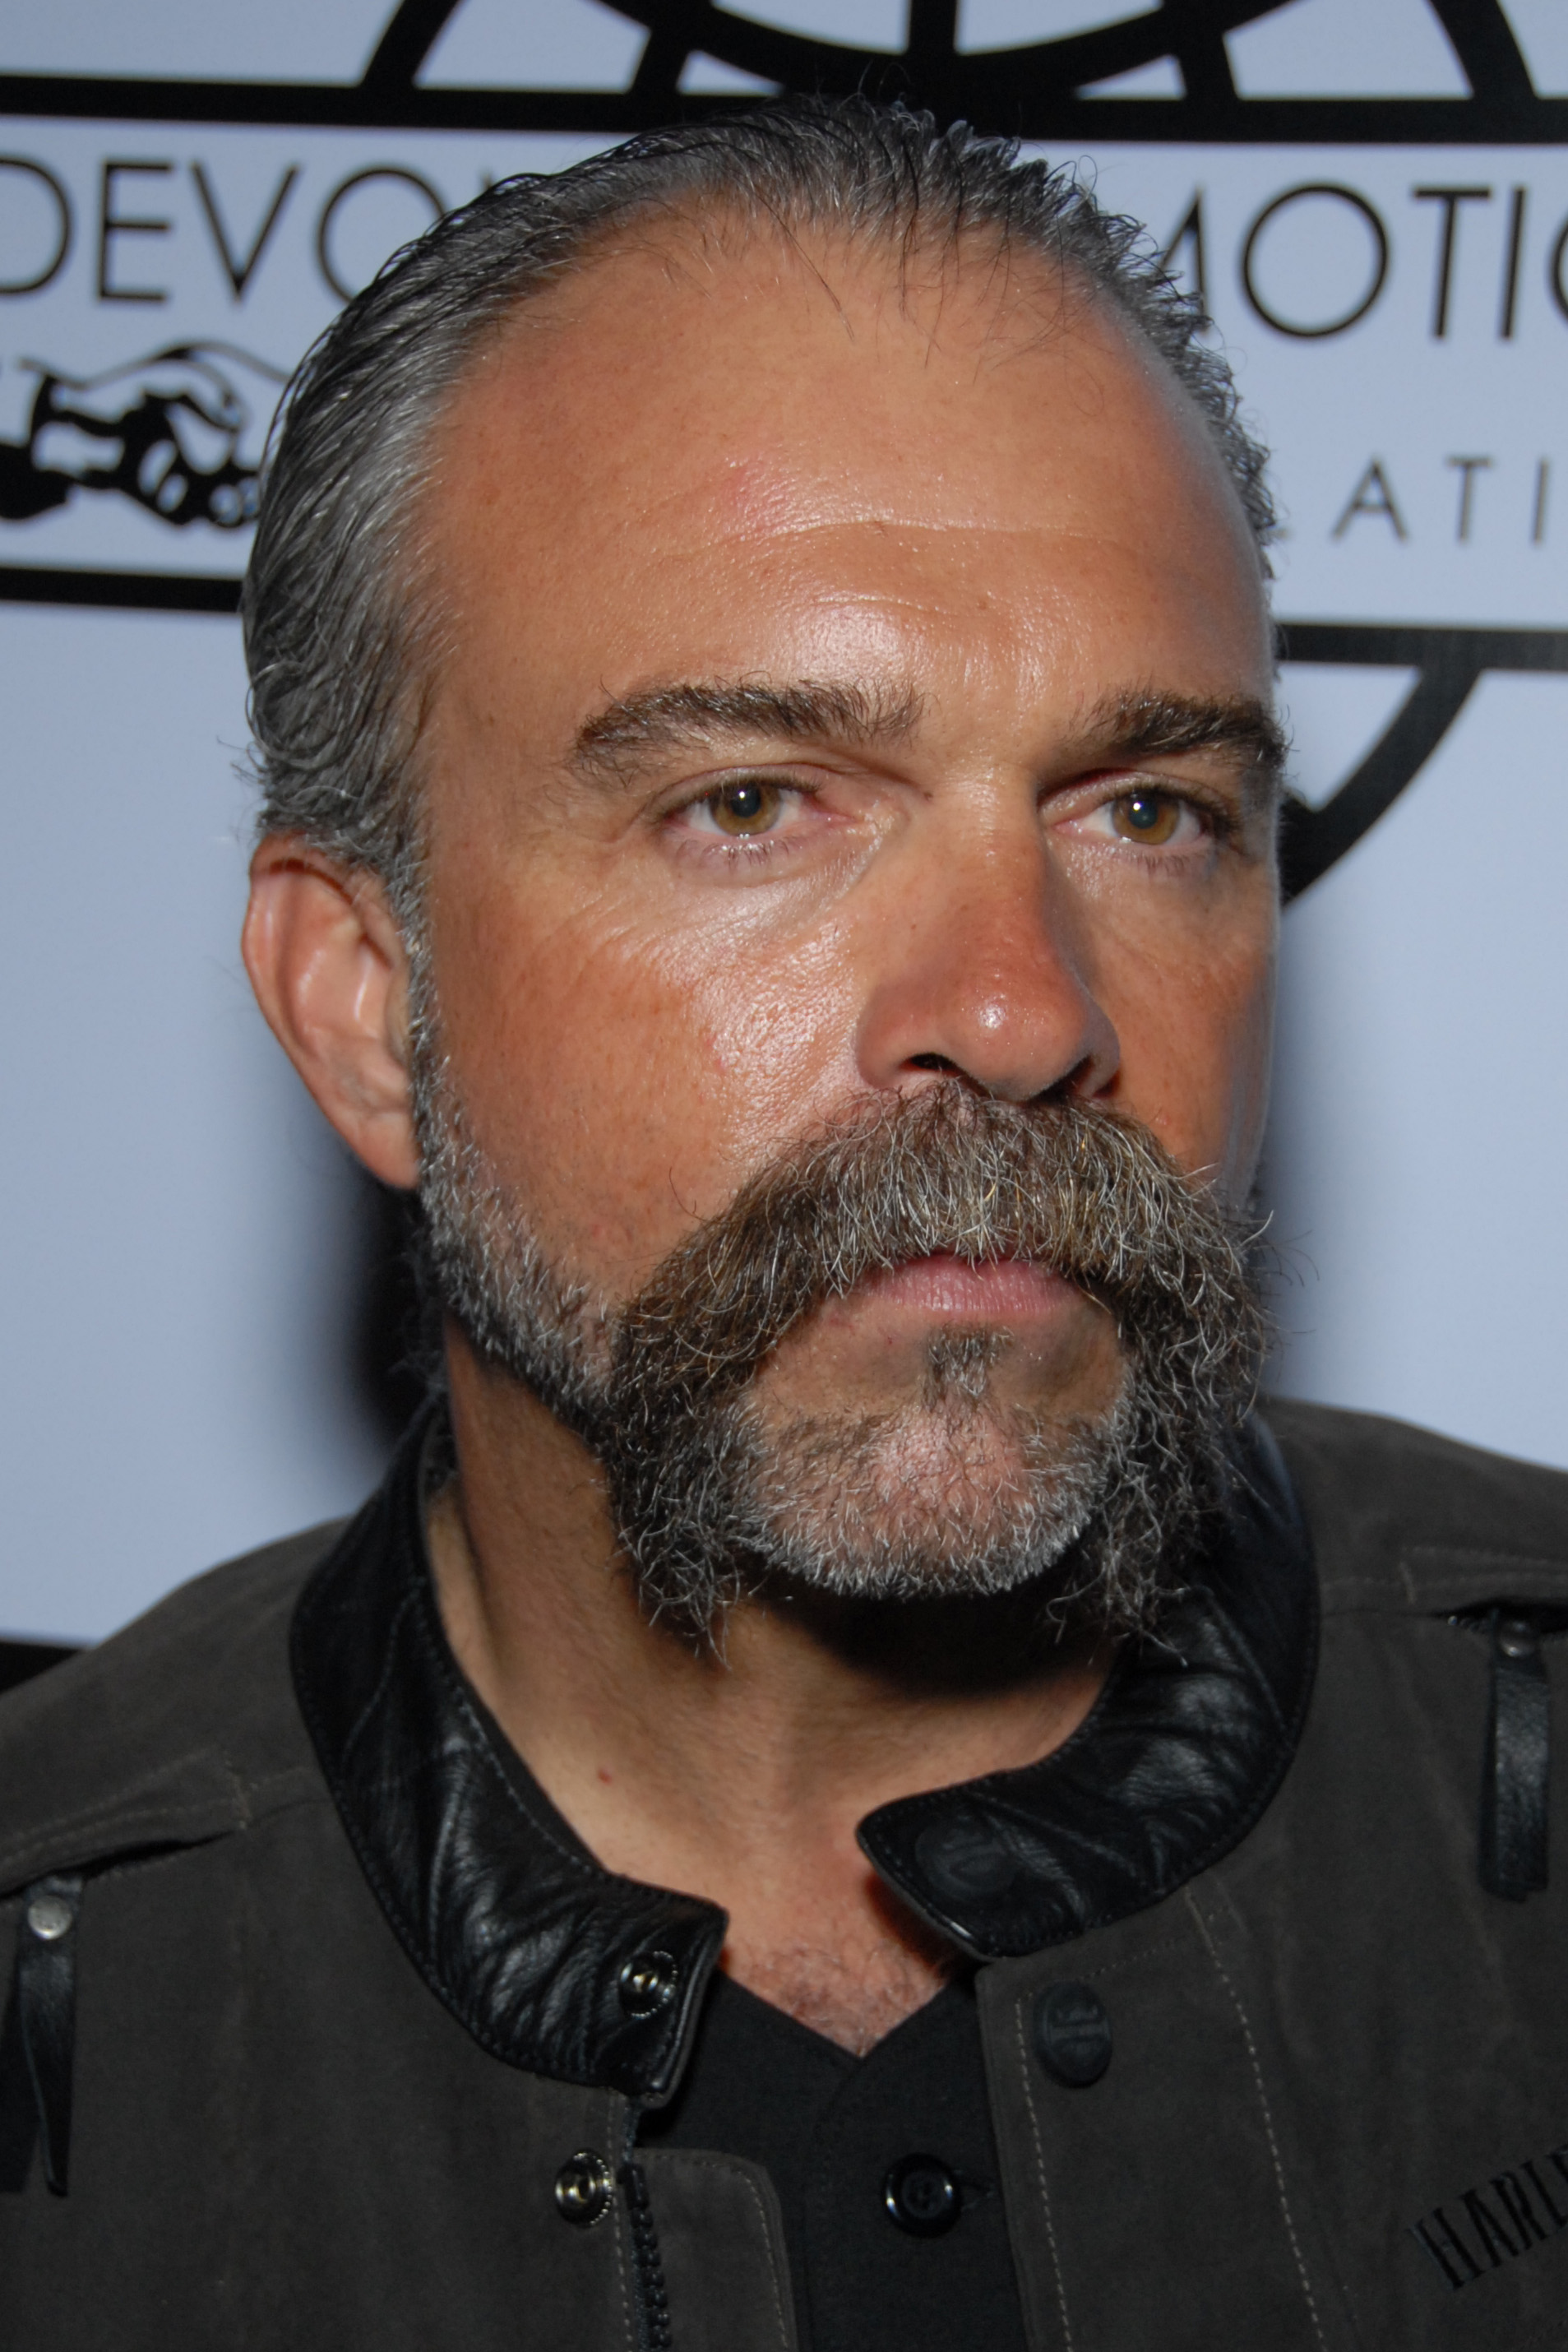 Sam Childers httpsuploadwikimediaorgwikipediacommons44